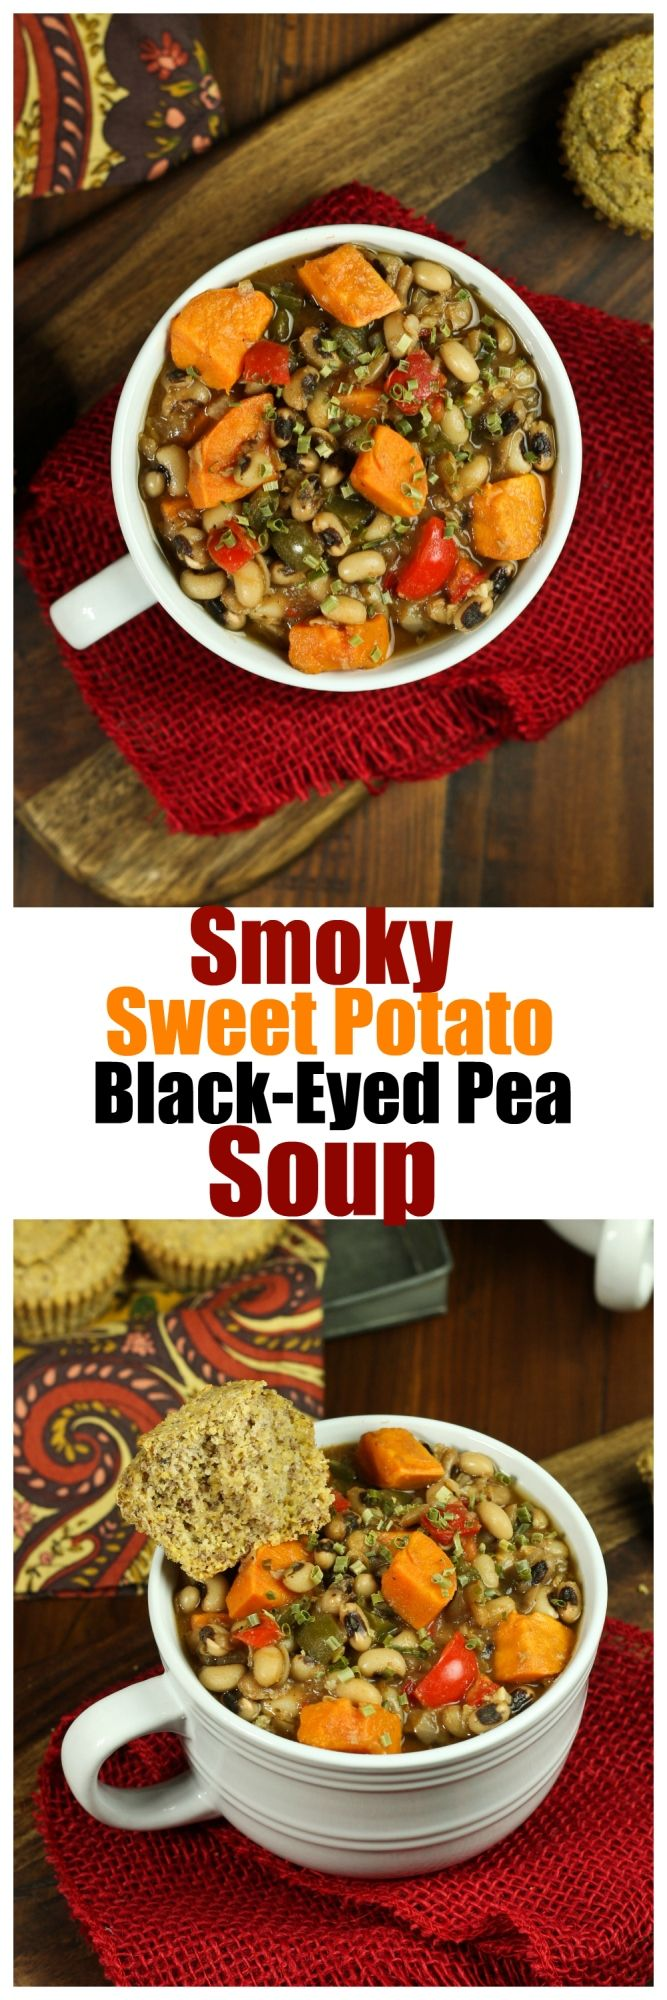 Just 8 ingredients for this whole 1 POT soup! Smoky, spicy and a touch of sweetness! So good, filling and healthy. Oil-free.